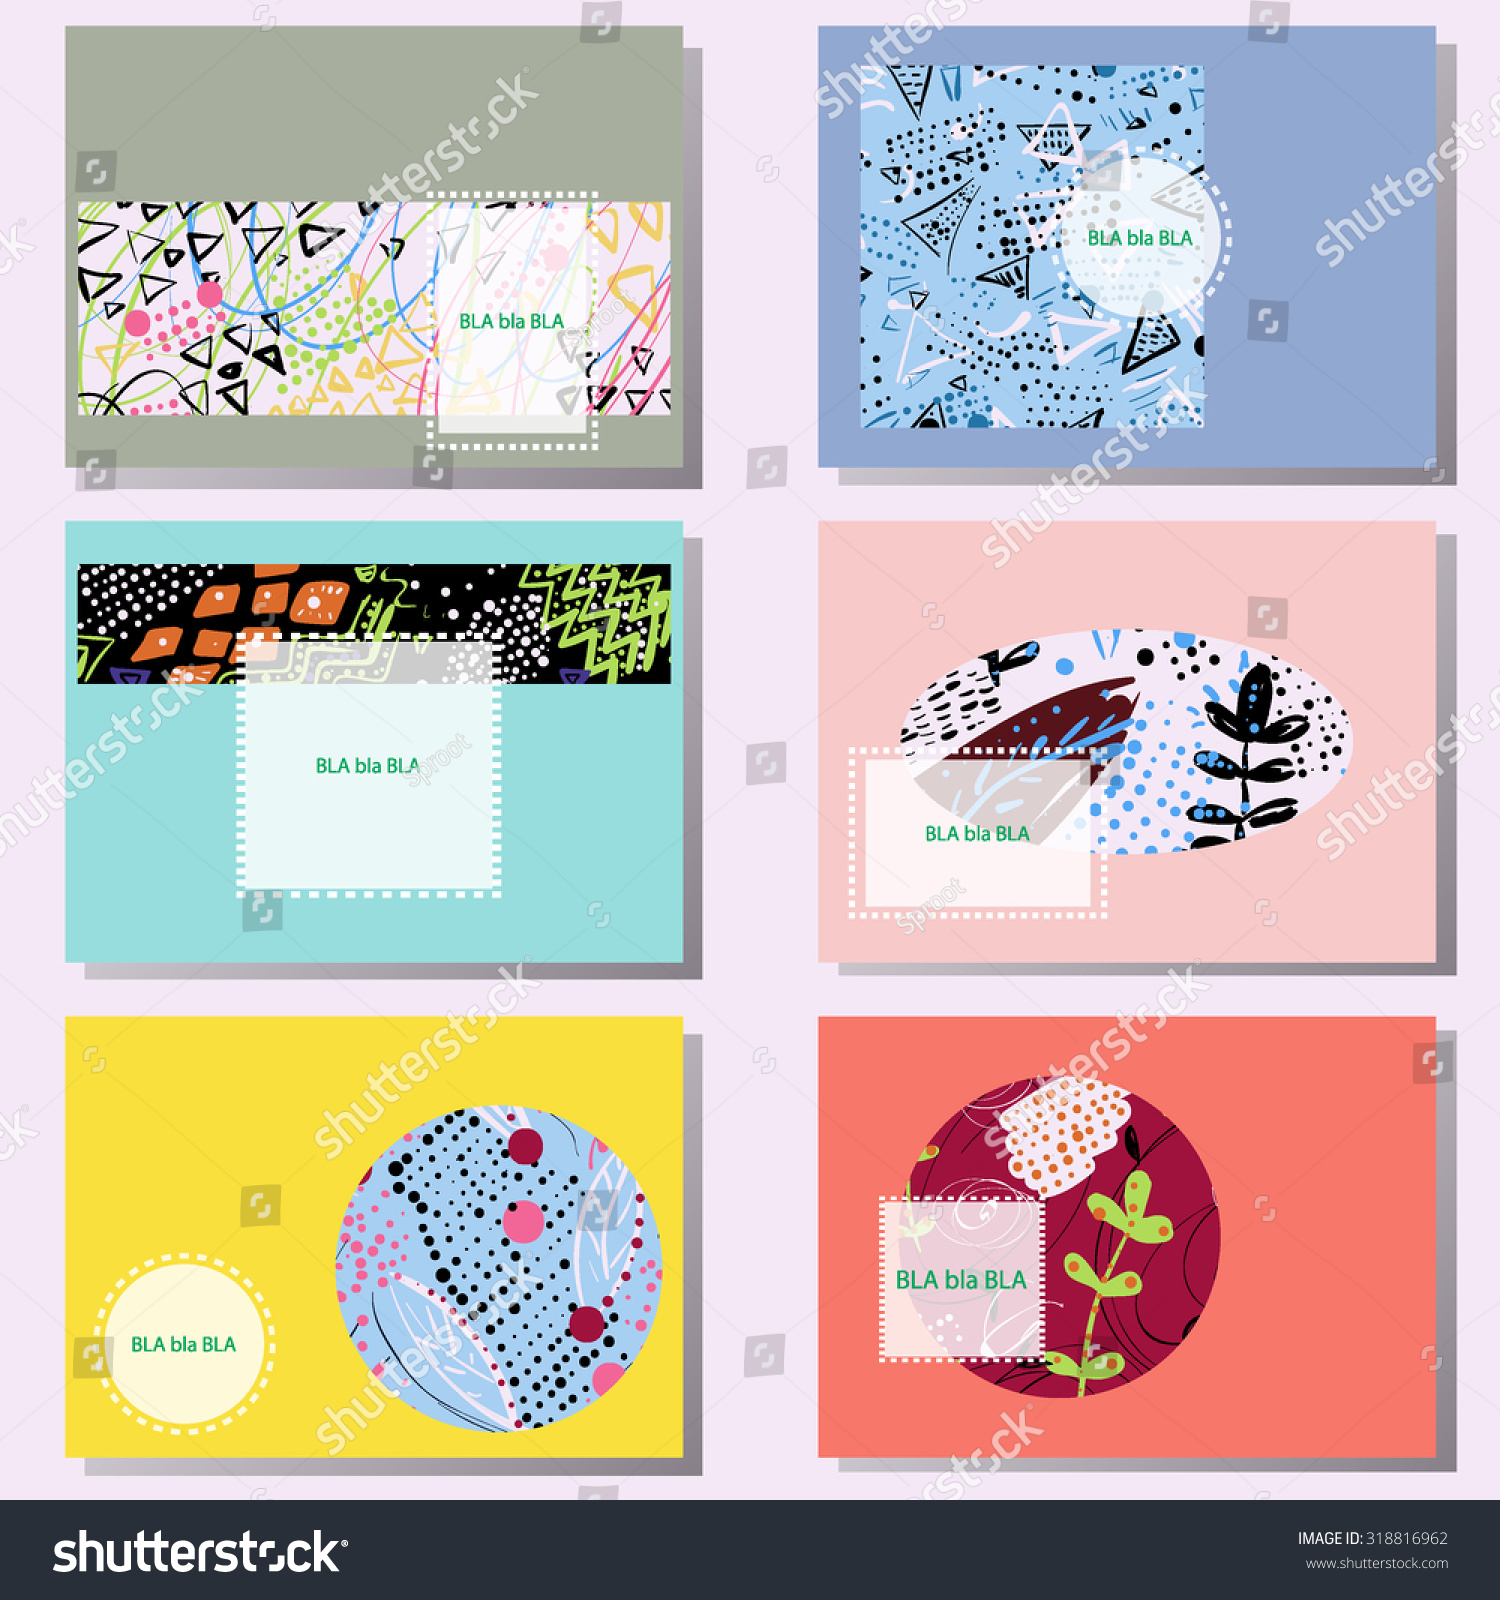 Wedding invitation business cards gallery free business cards wedding invitation business cards gallery free business cards set 6 creative cards hand drawn stock vector magicingreecefo Choice Image